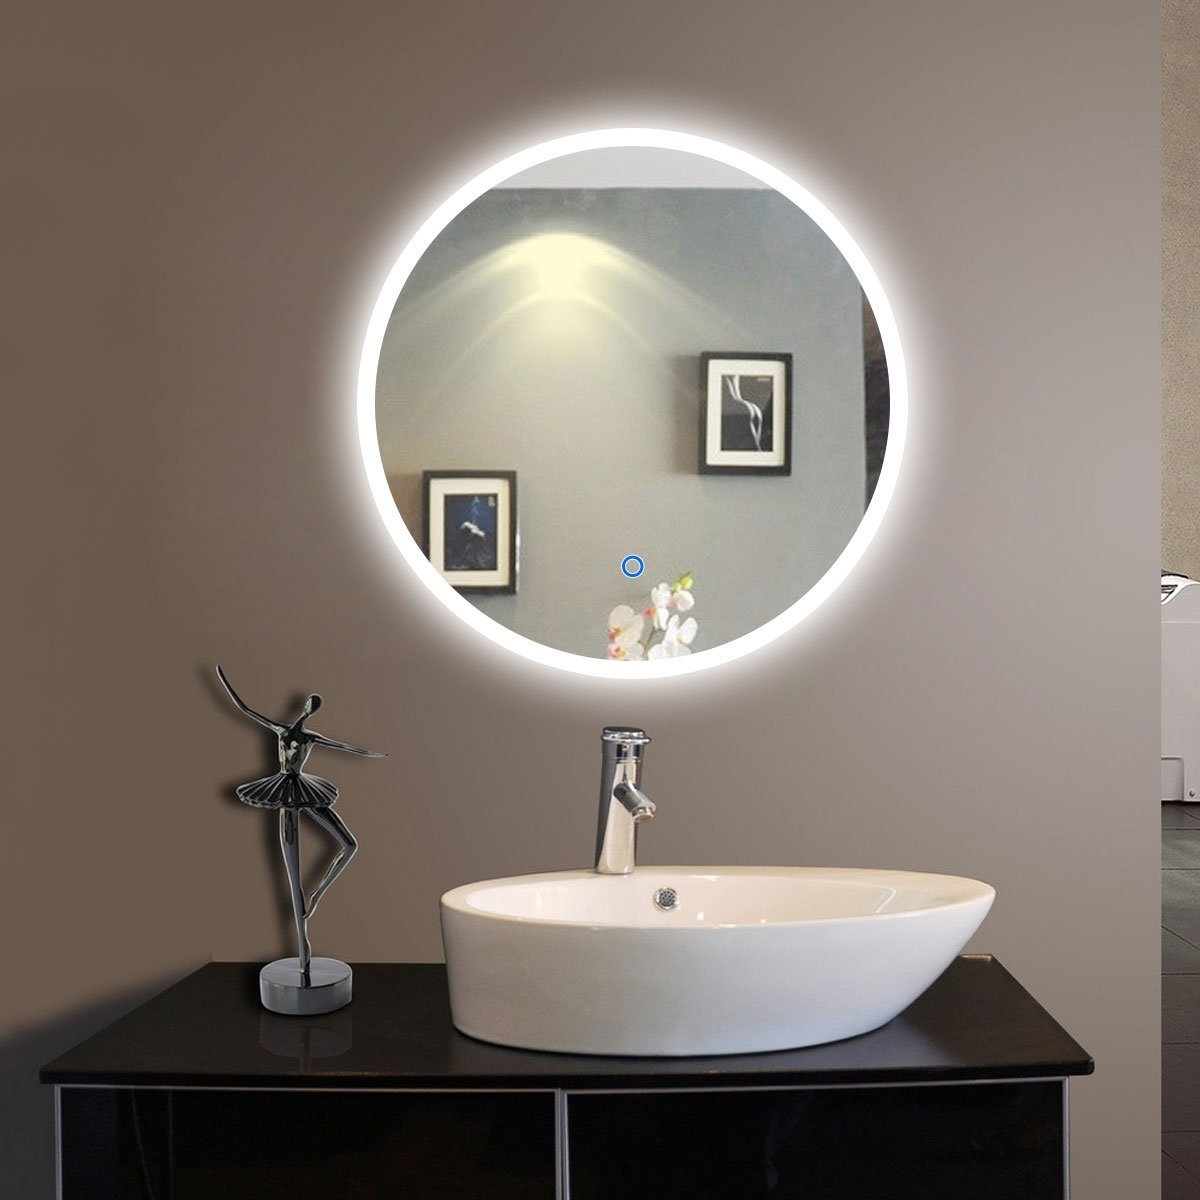 LED-vanity-bathroom-mirrors-bathroom-vanity-cabinets-illuminated-backlit-rectangle-frameless ...